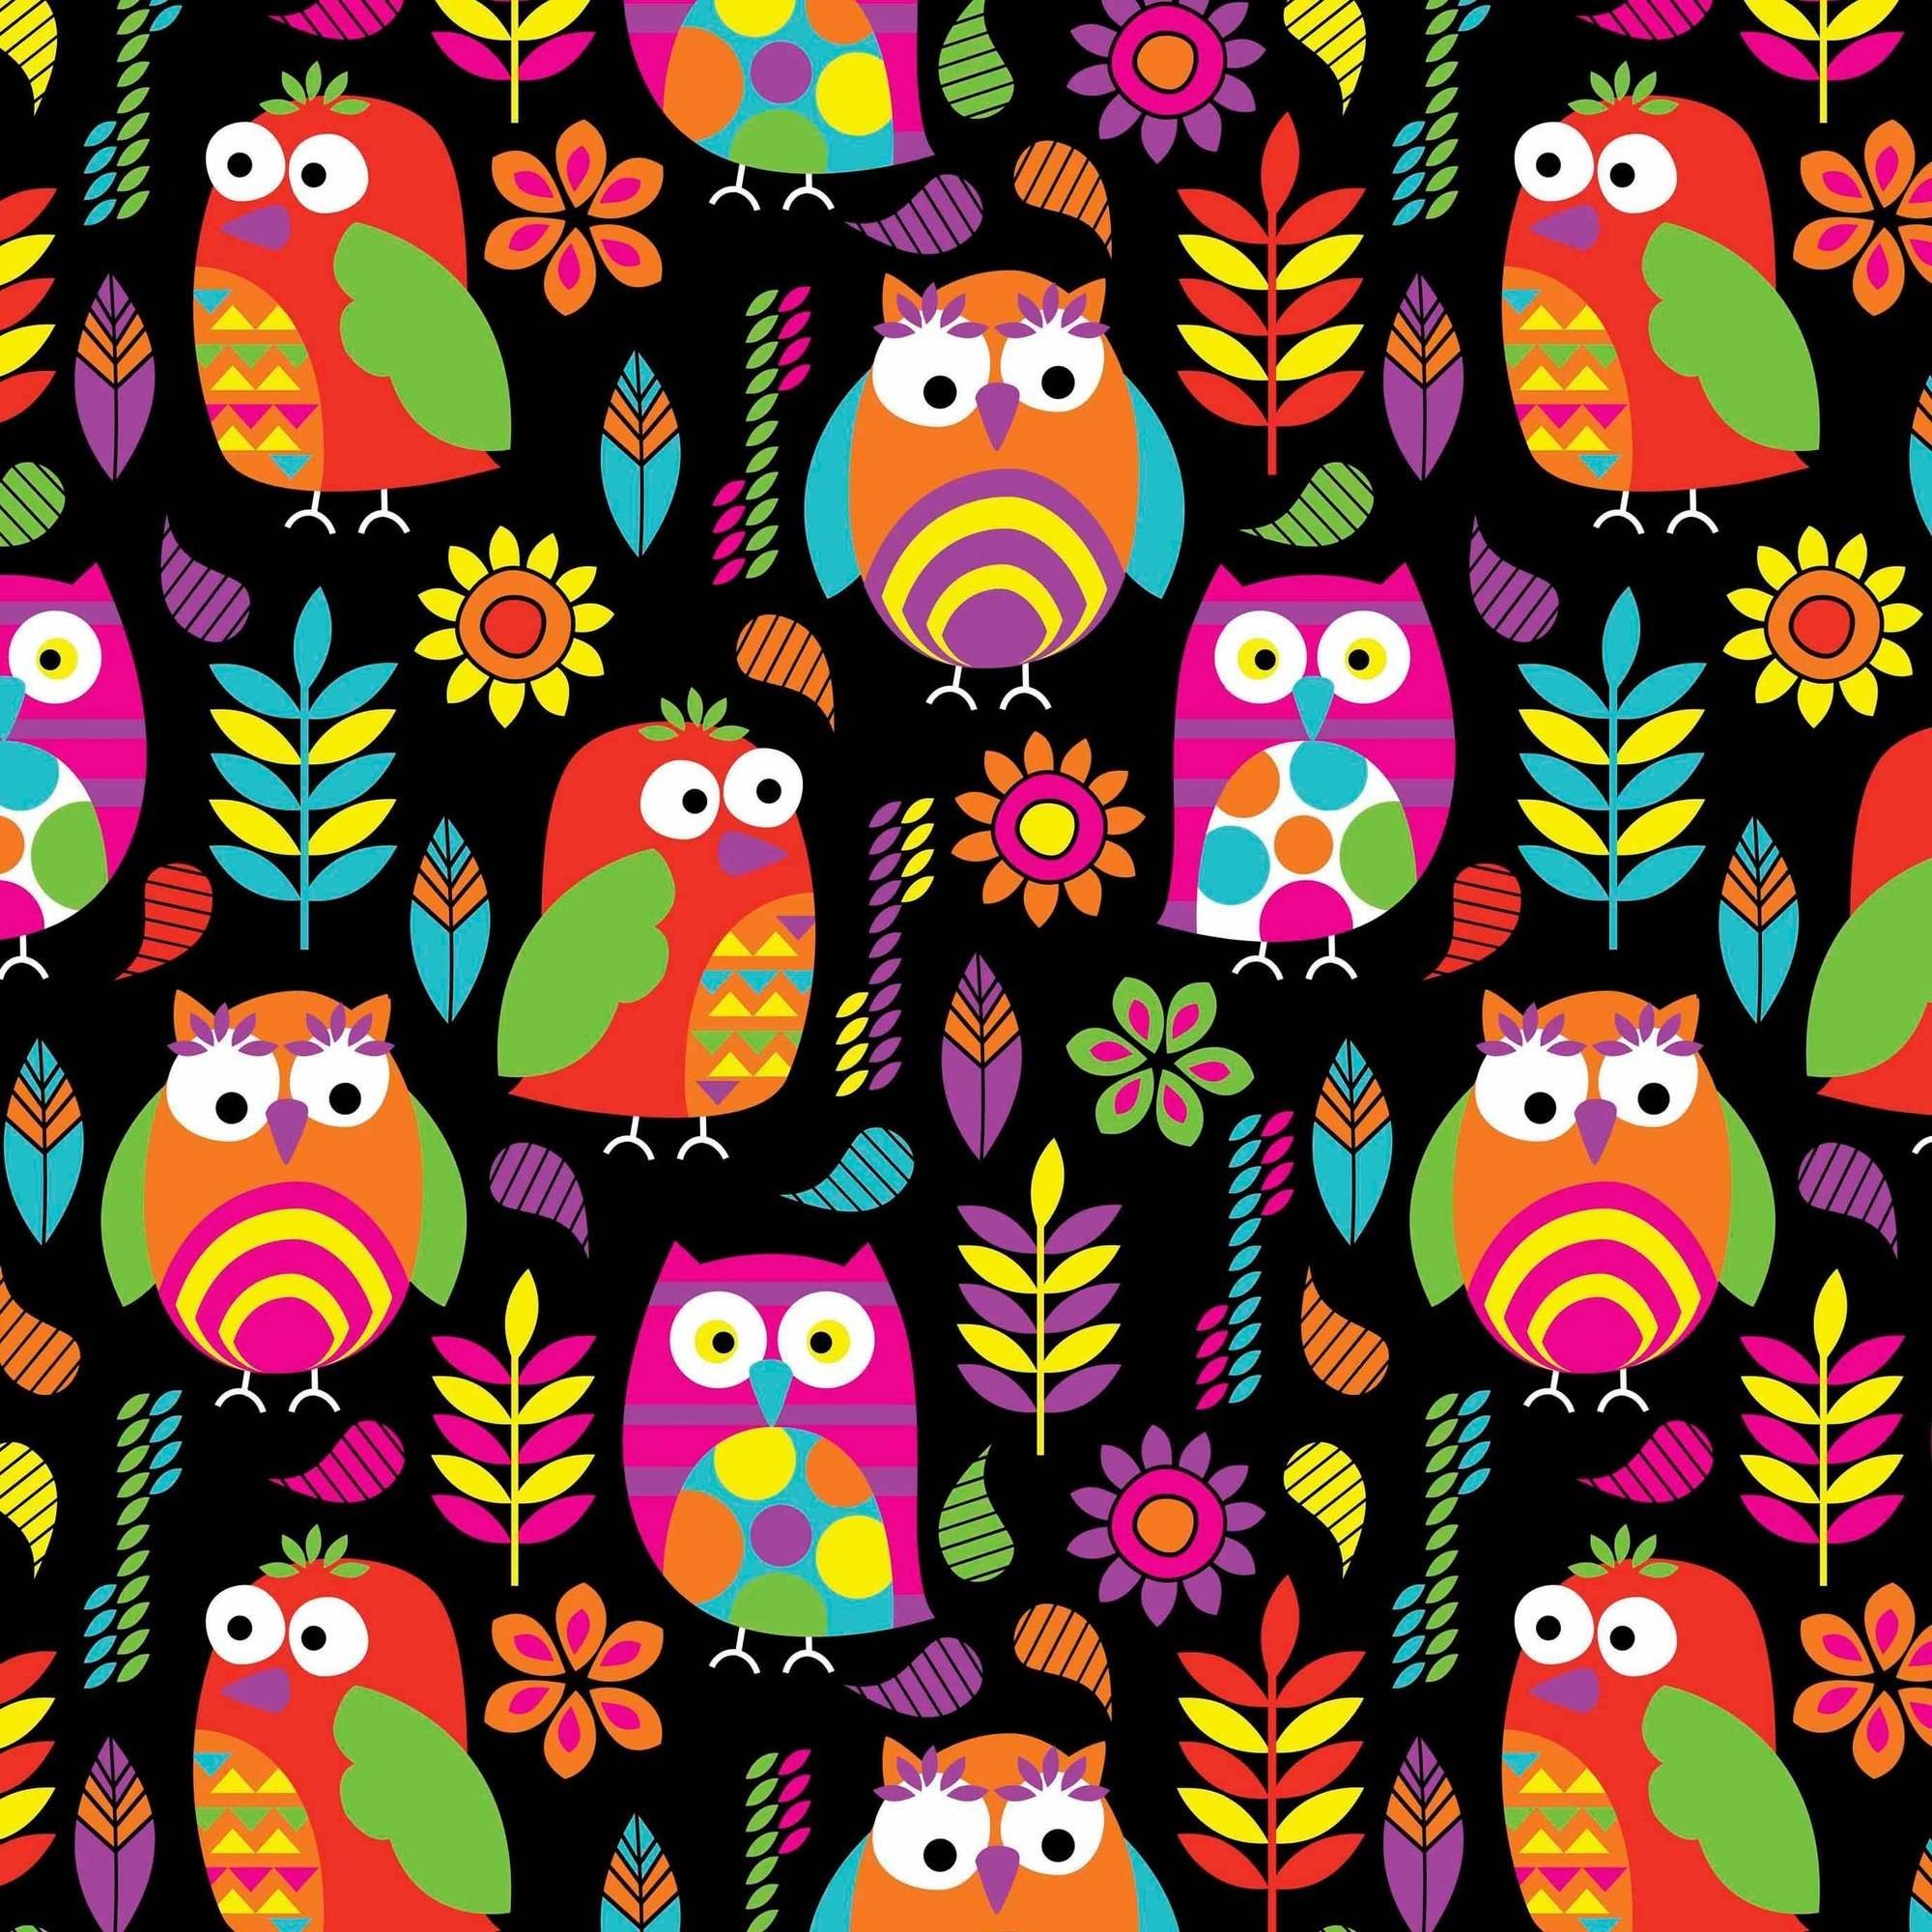 Yardbright coupon codes - Ultra Soft Heavenly Plush Fabric By The Yard Bright Owls